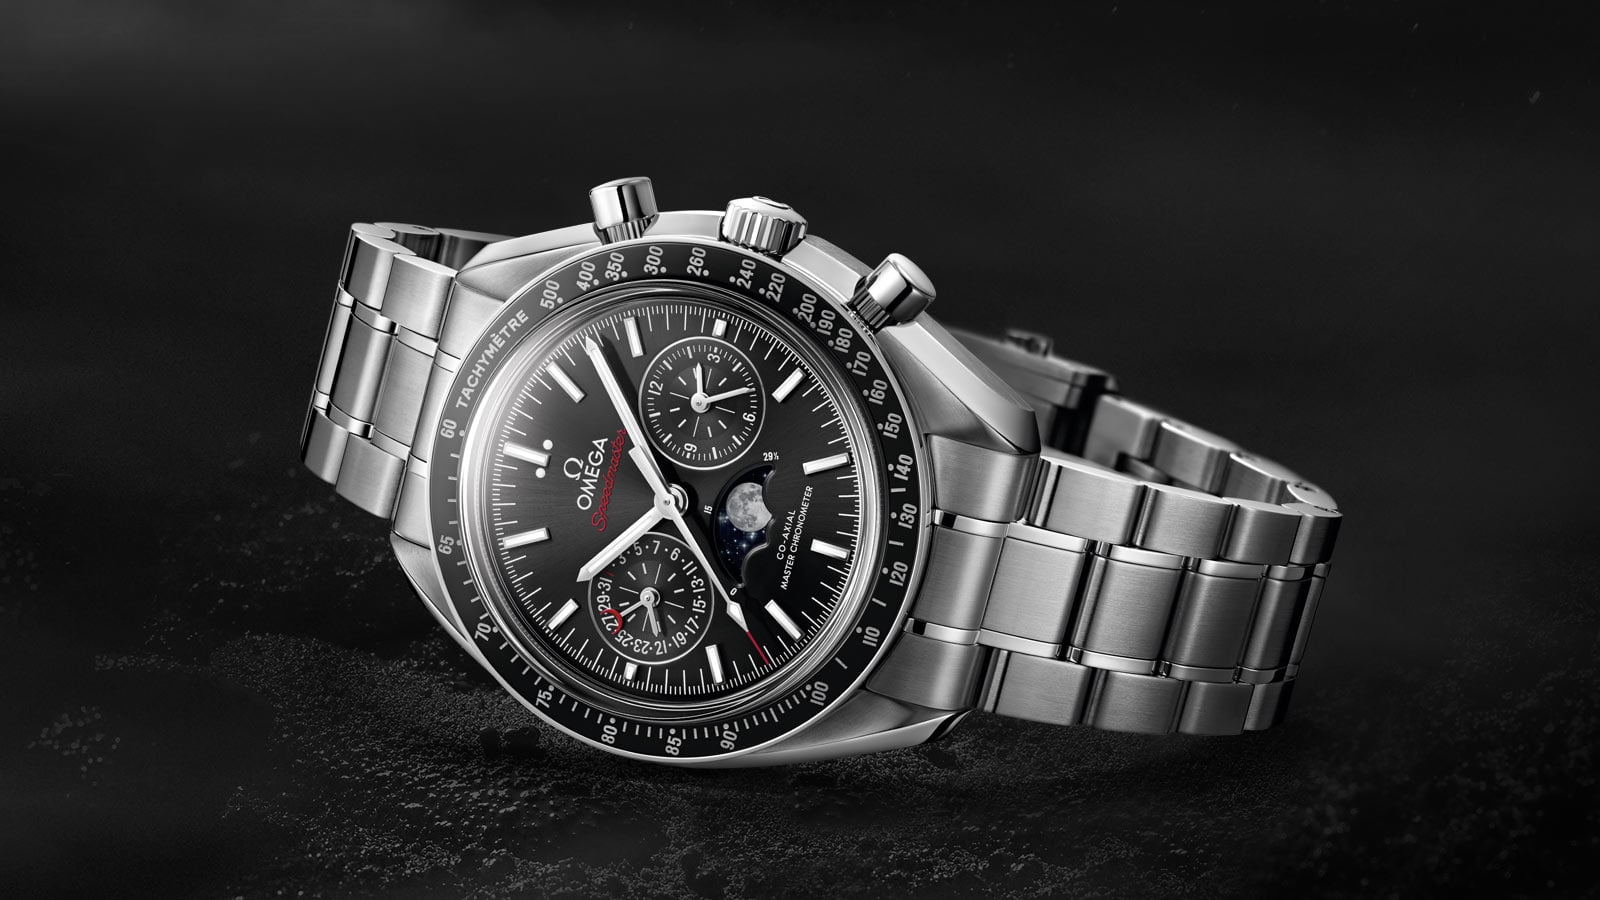 Omega and the world of space exploration - 슬라이드 1 - 34083